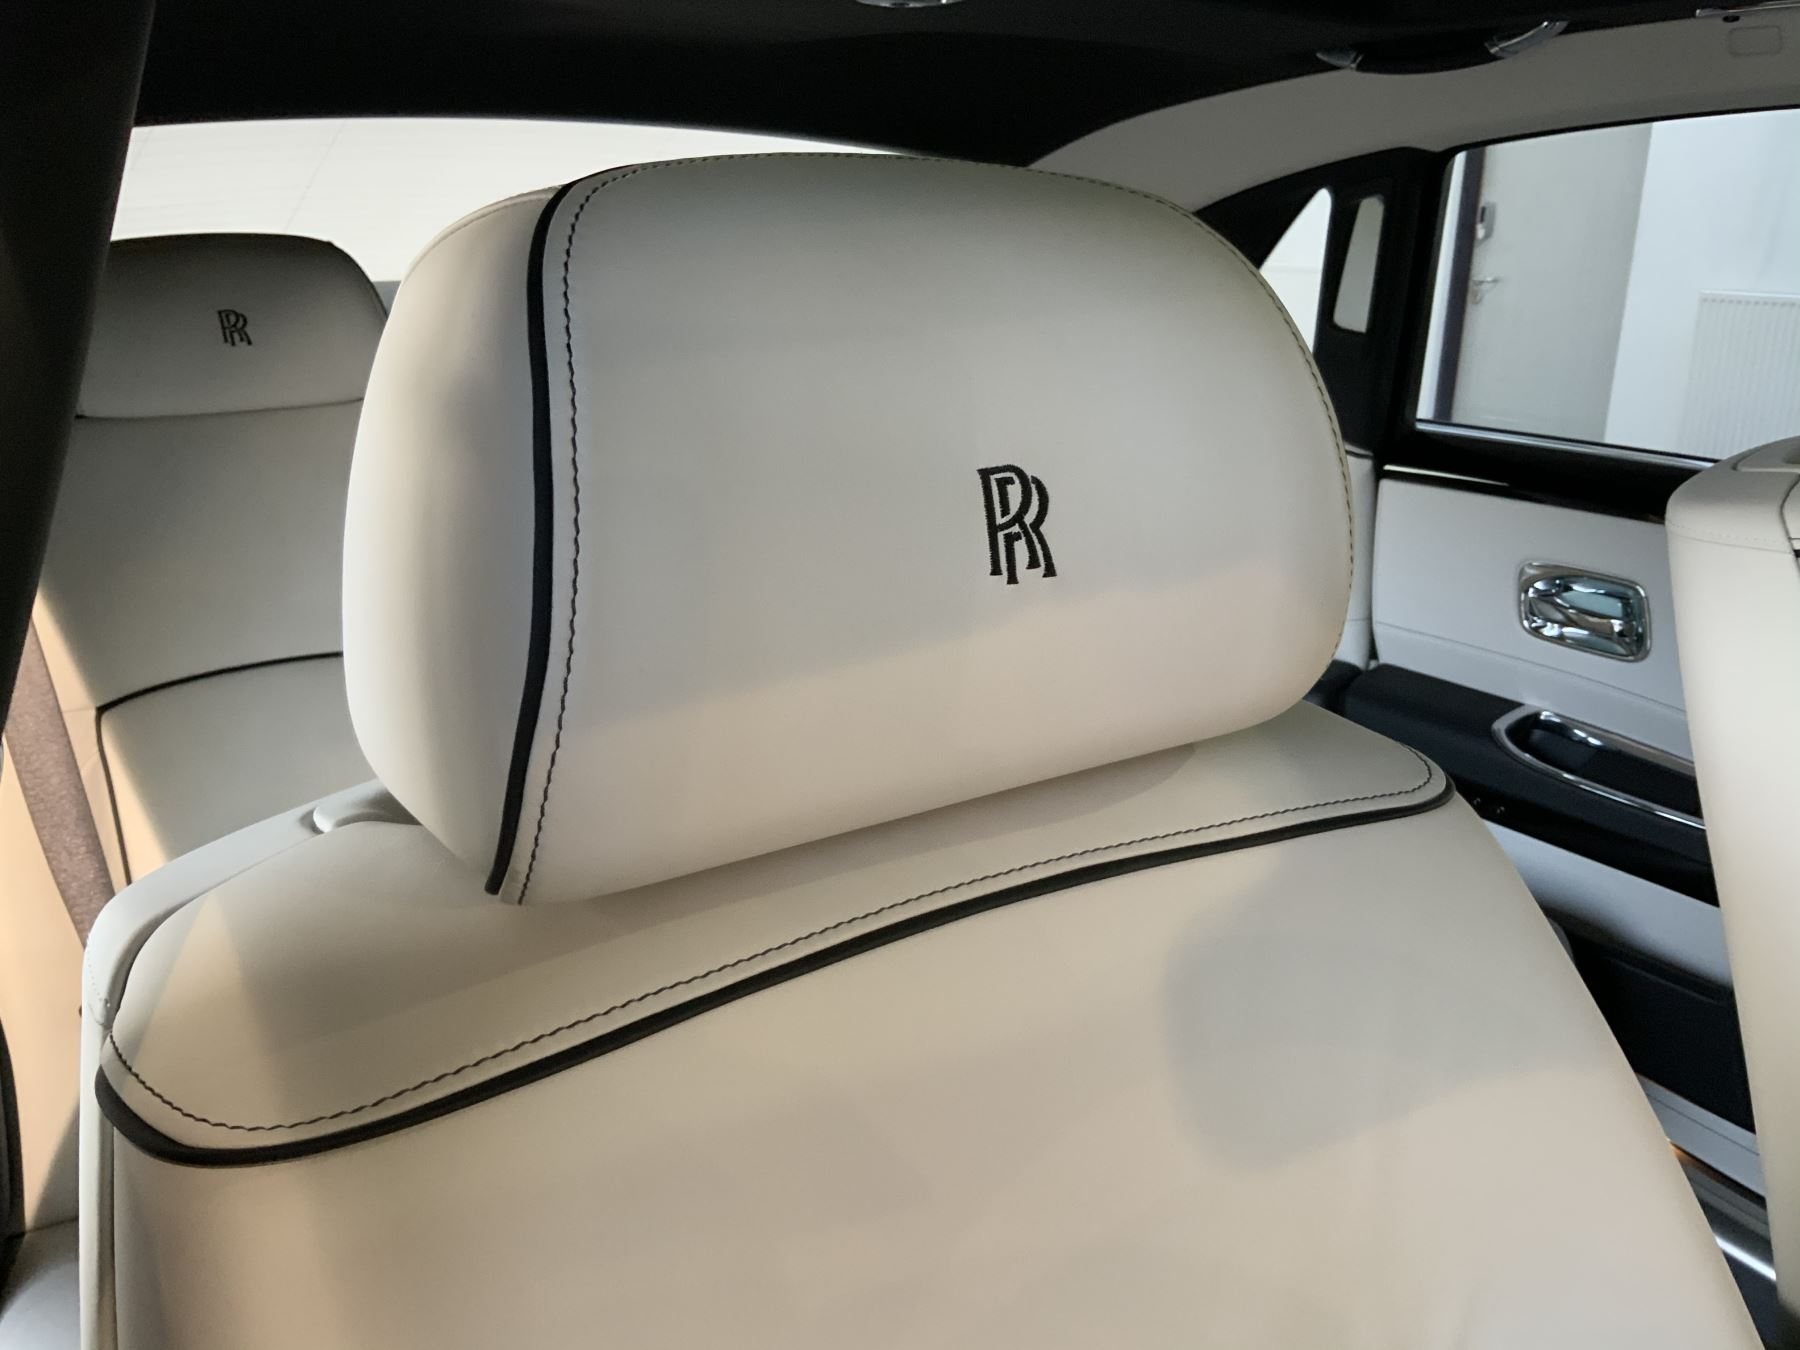 Rolls-Royce Ghost V-SPEC 4dr Auto image 22